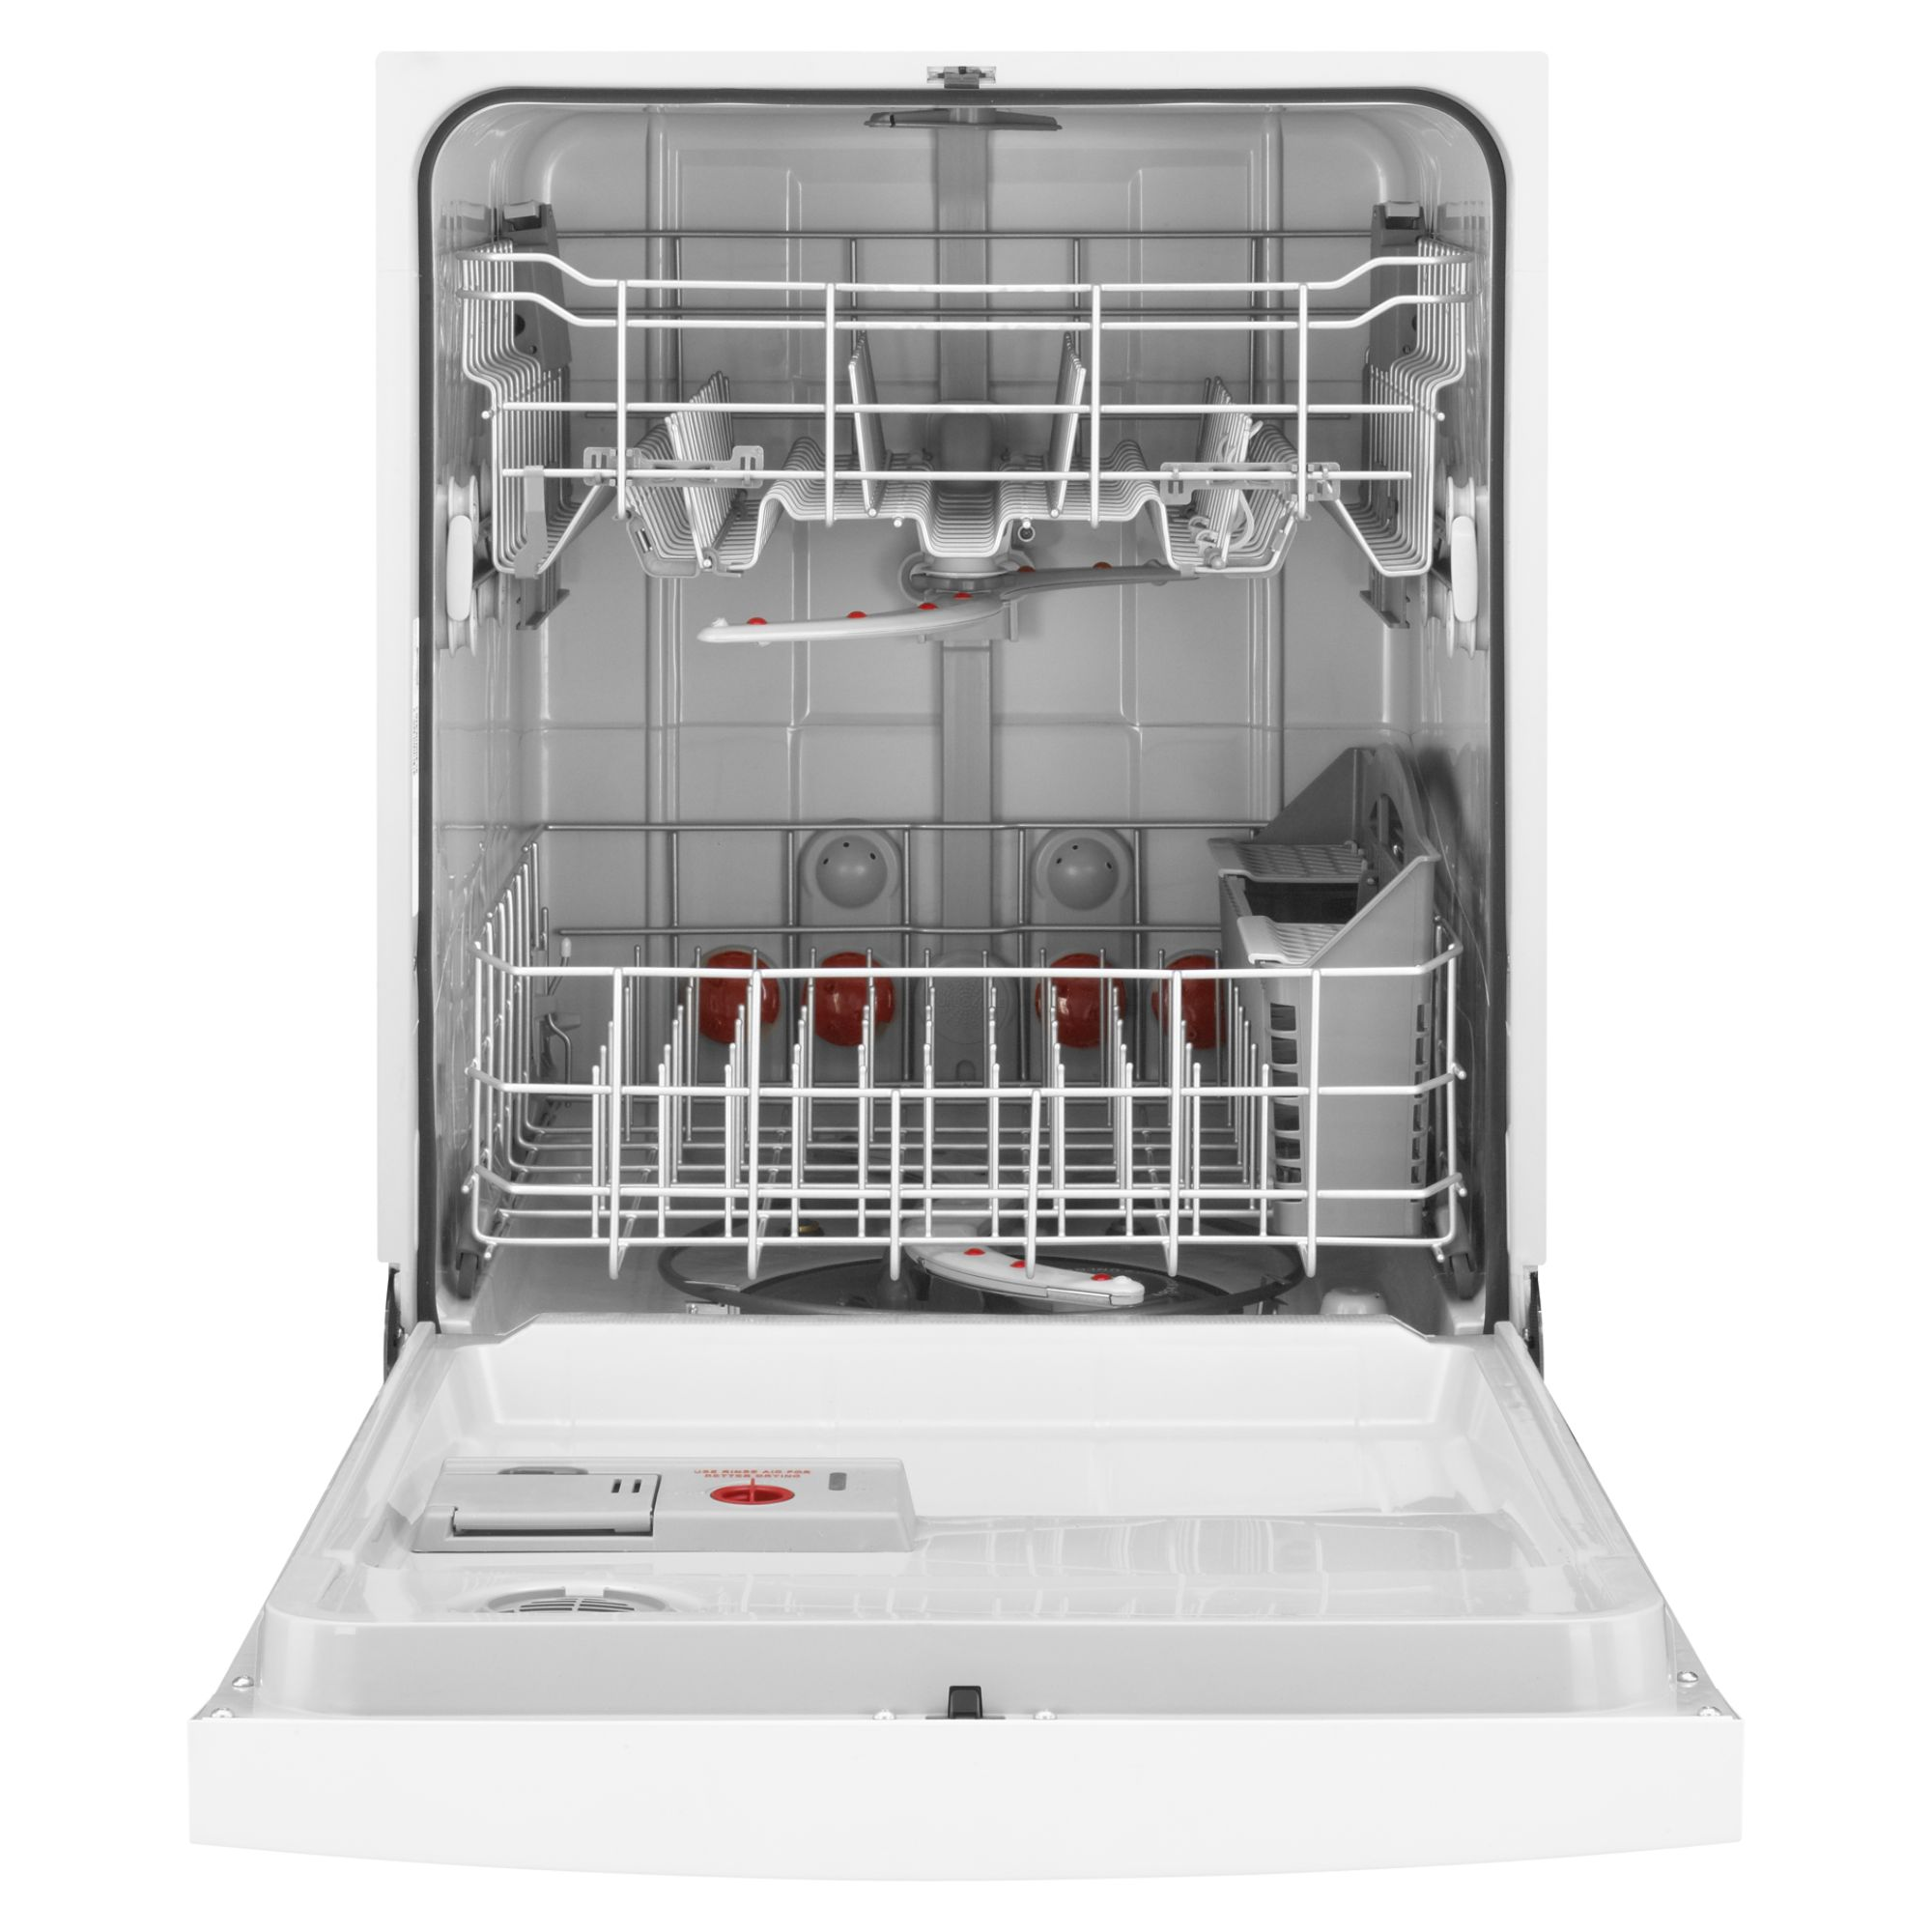 "Kenmore 24"" Built-In Dishwasher w/ TurboZone™ - White"